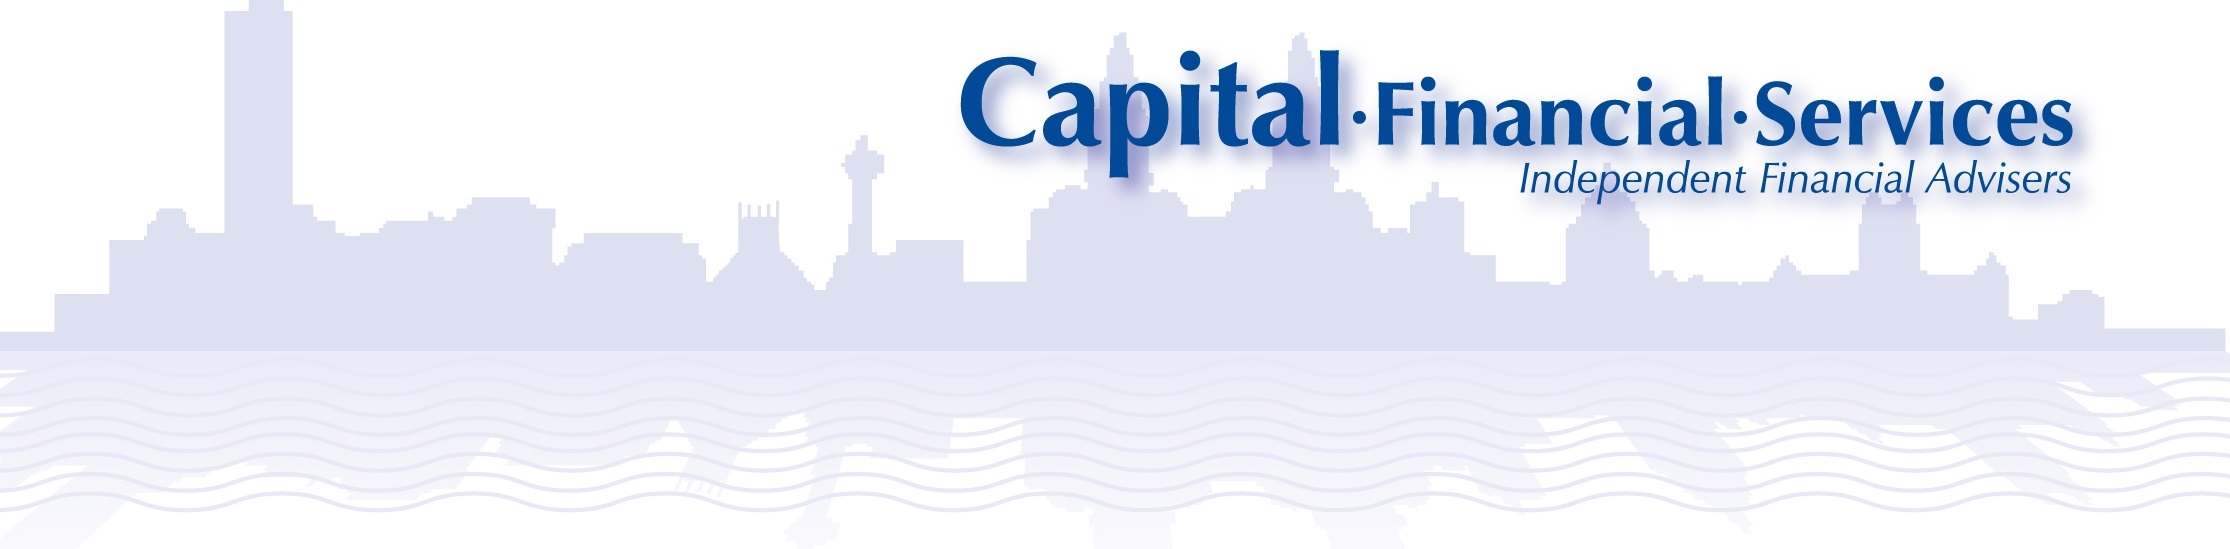 Capital Financial Services Logo